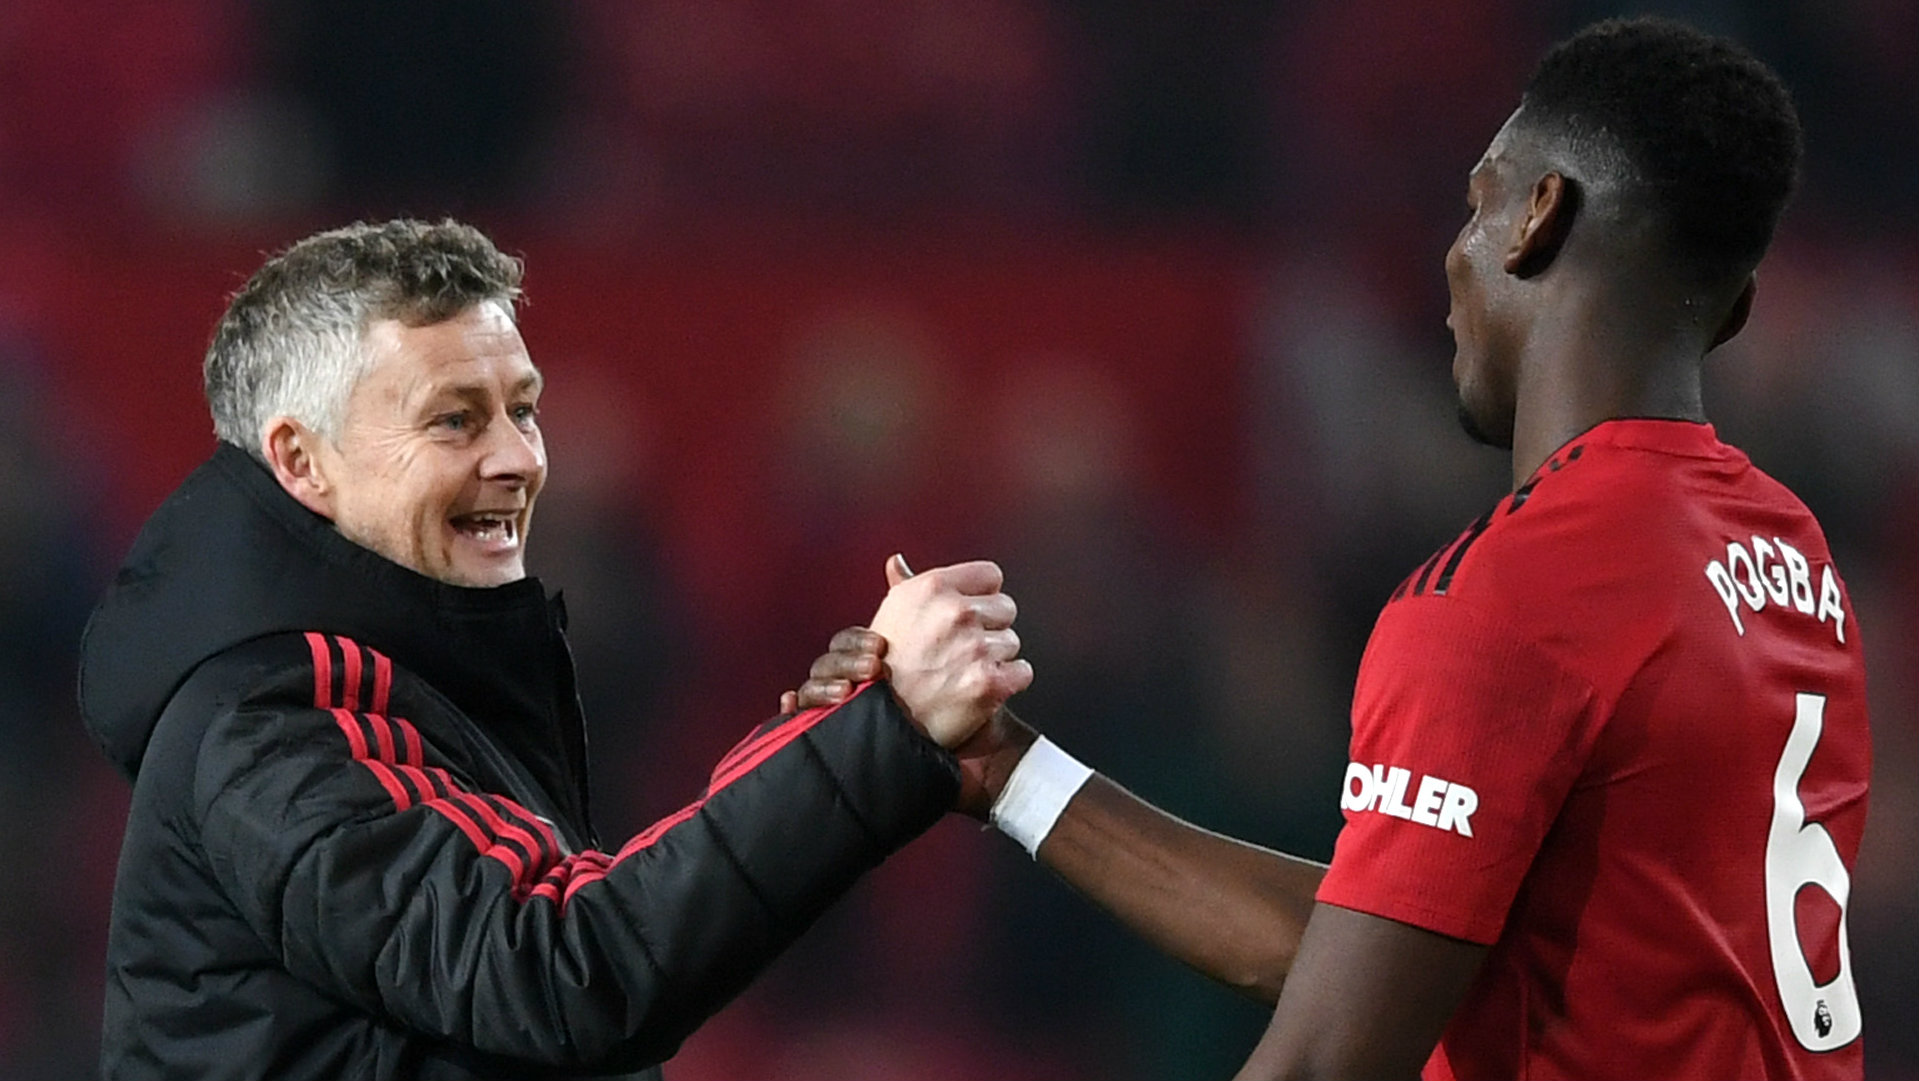 Ole Gunnar Solskjaer and Paul Pogba